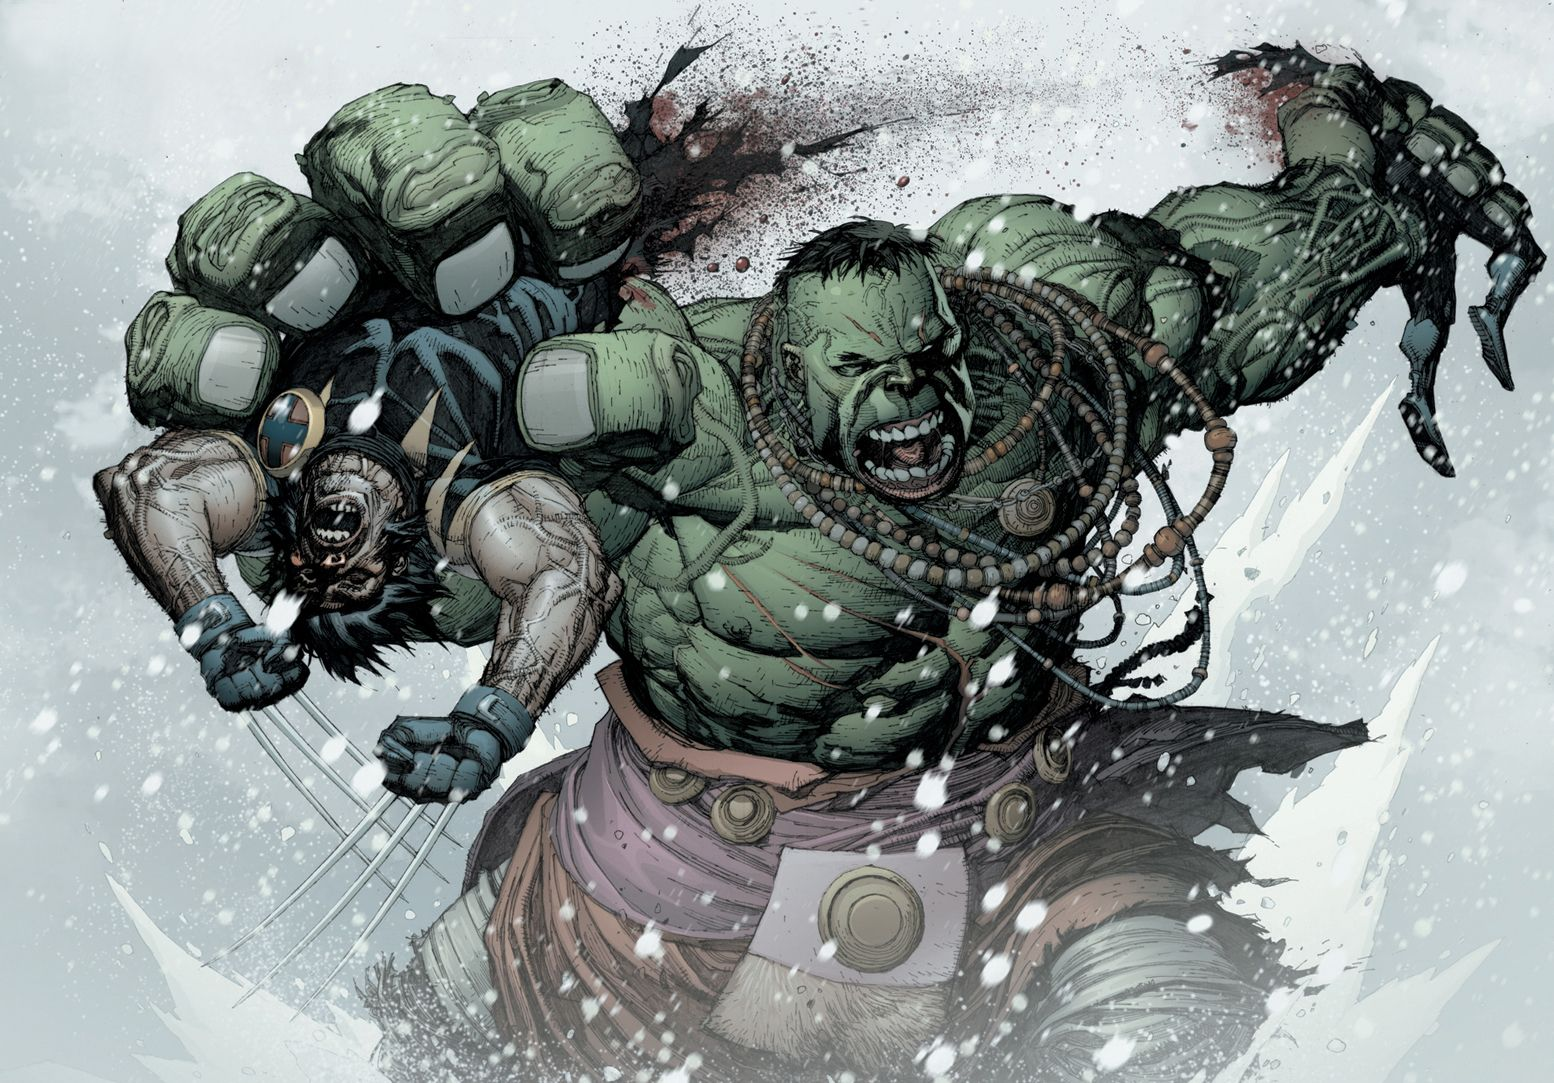 1554x1083 1 vs 100: World War Hulk vs Wolverine - Battles - Comic Vine